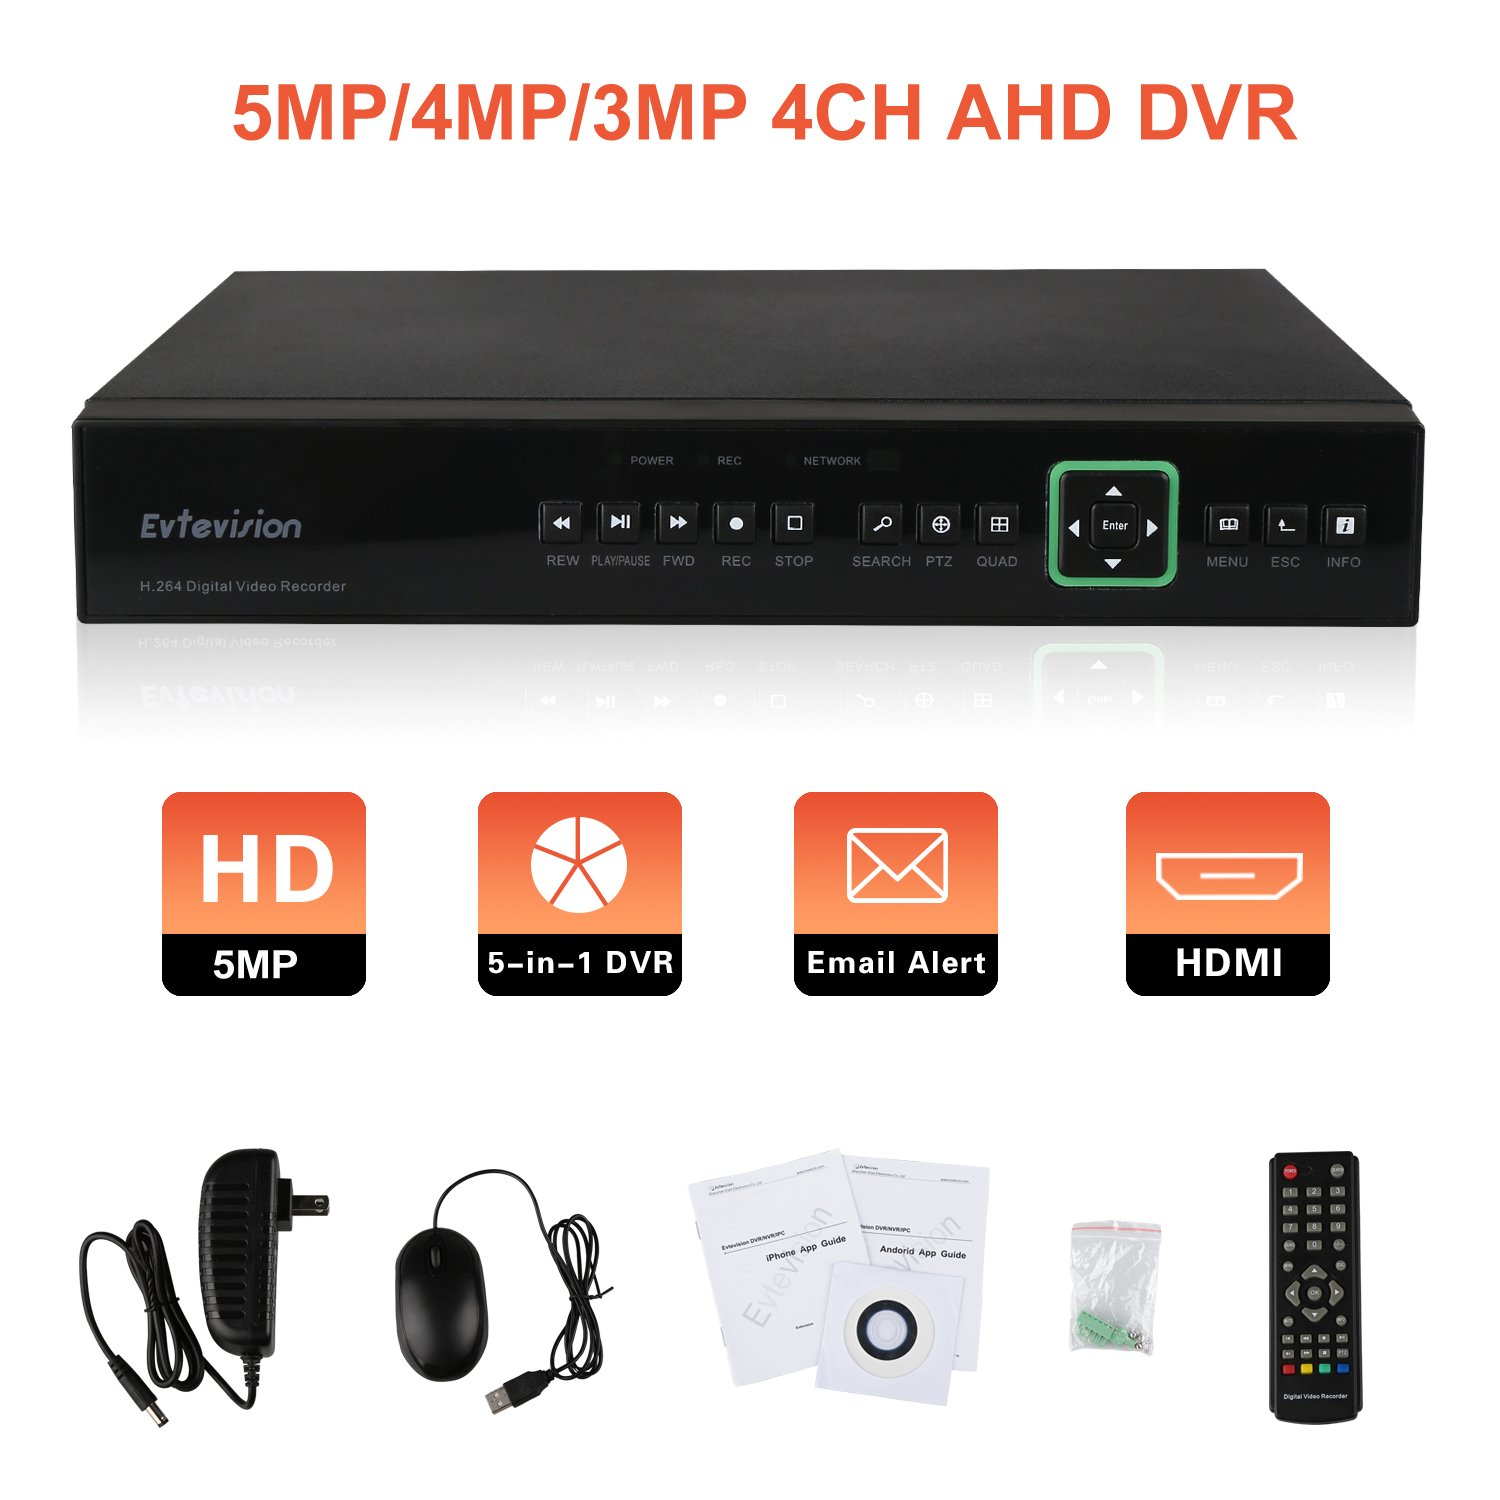 Evtevision 4 Channel 5MP/4MP AHD DVR Security Standalone Video Recorder, Support 4CH 5MP/4MP AHD DVR, 5-in-1 1080P (CVI/TVI/AHD/IP) & Analog 960H, Hard Drive NOT Included, Remote Smartphone Access